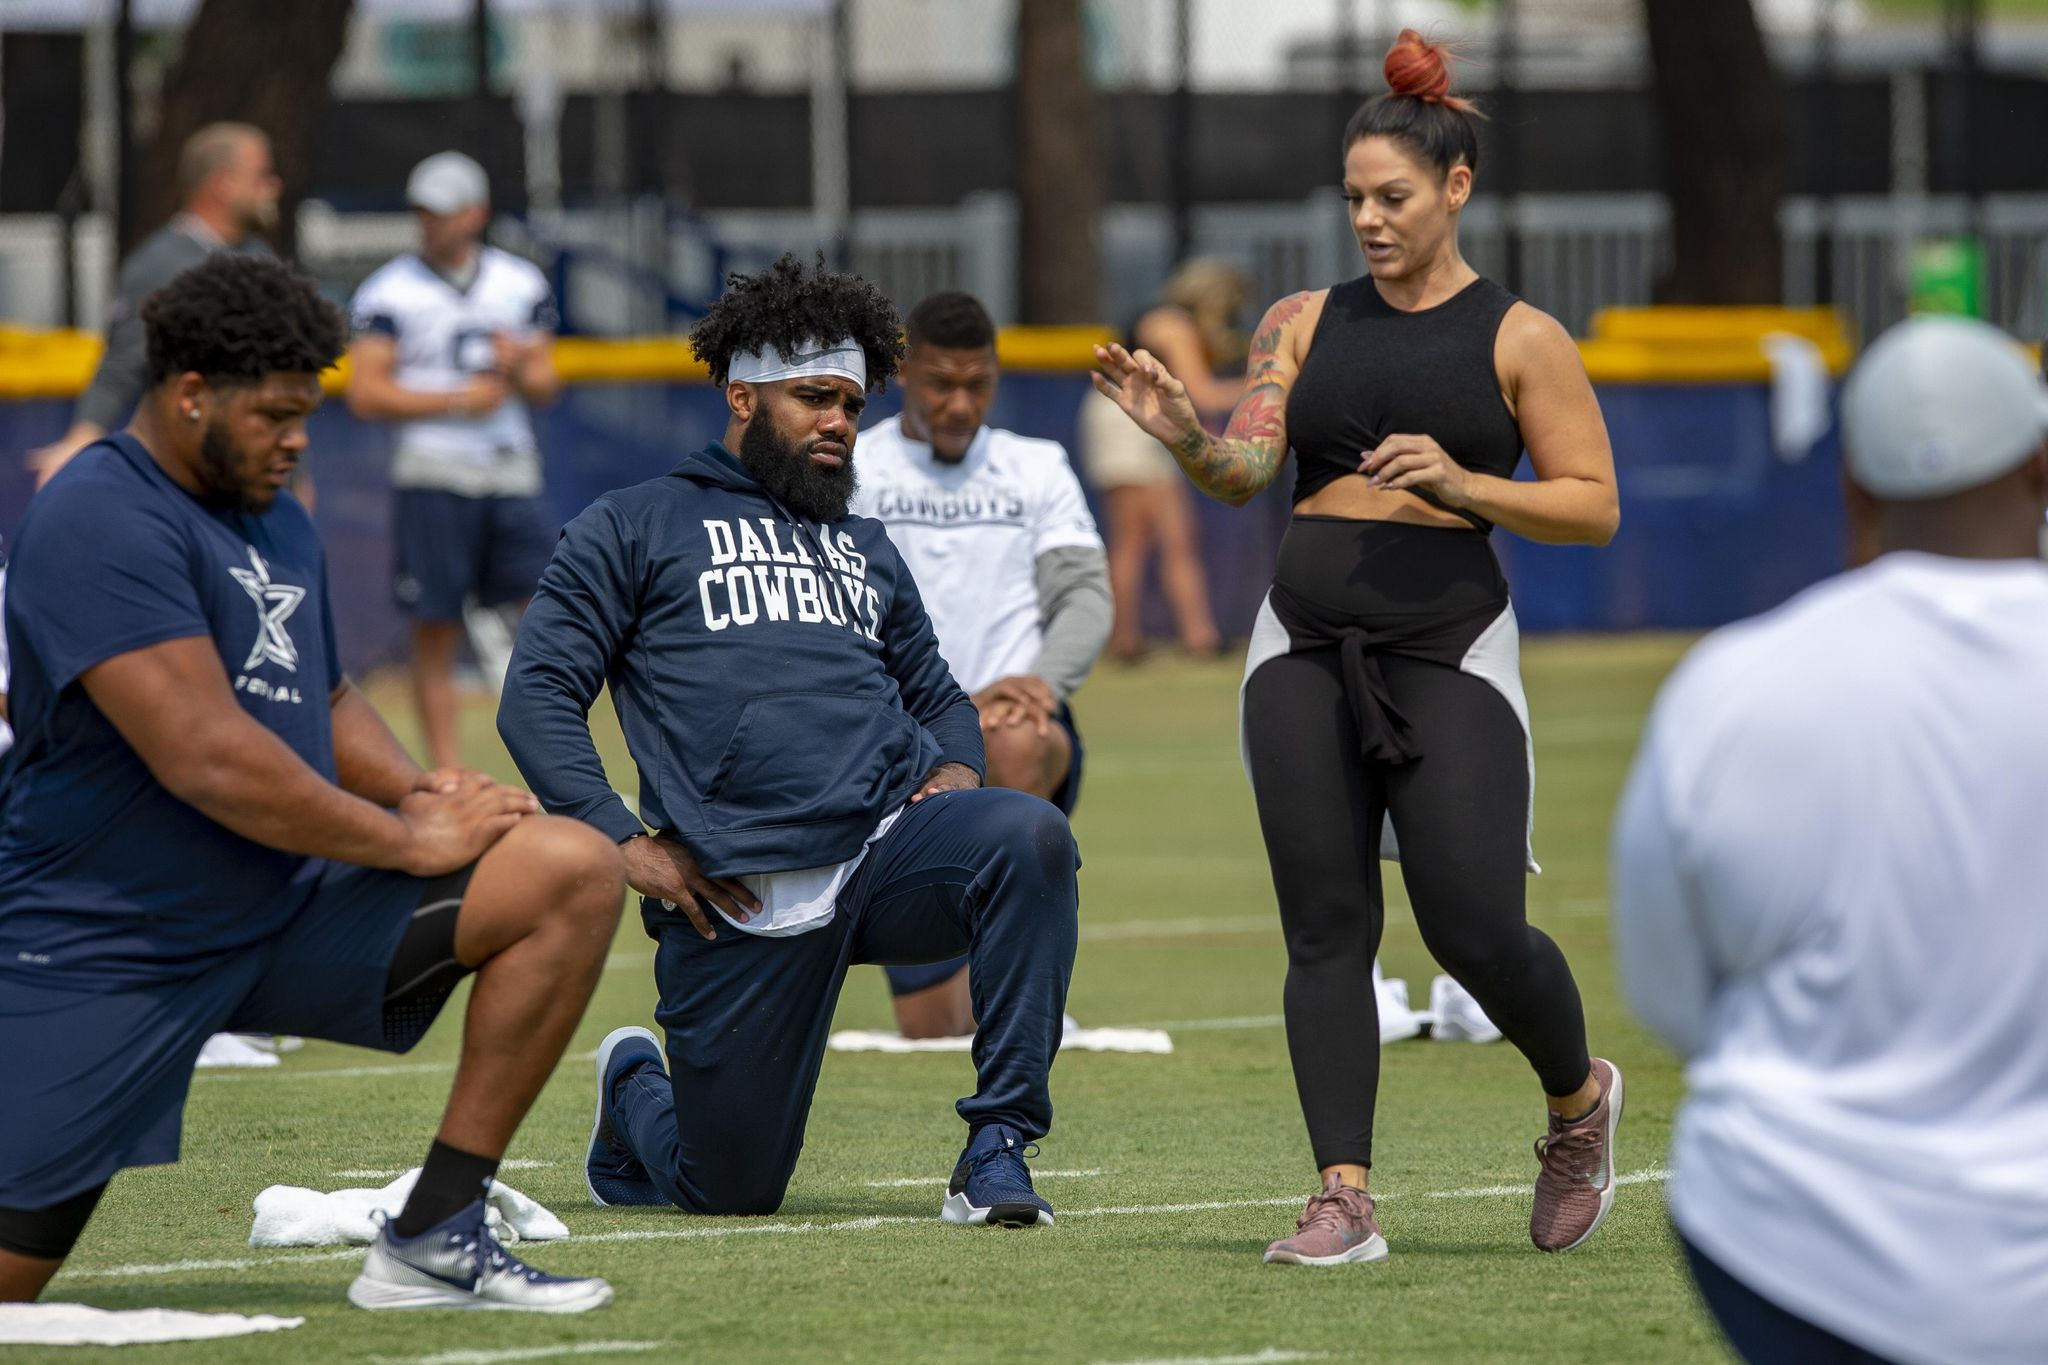 Yoga_in_the_nfl_football_87684_s2048x1365